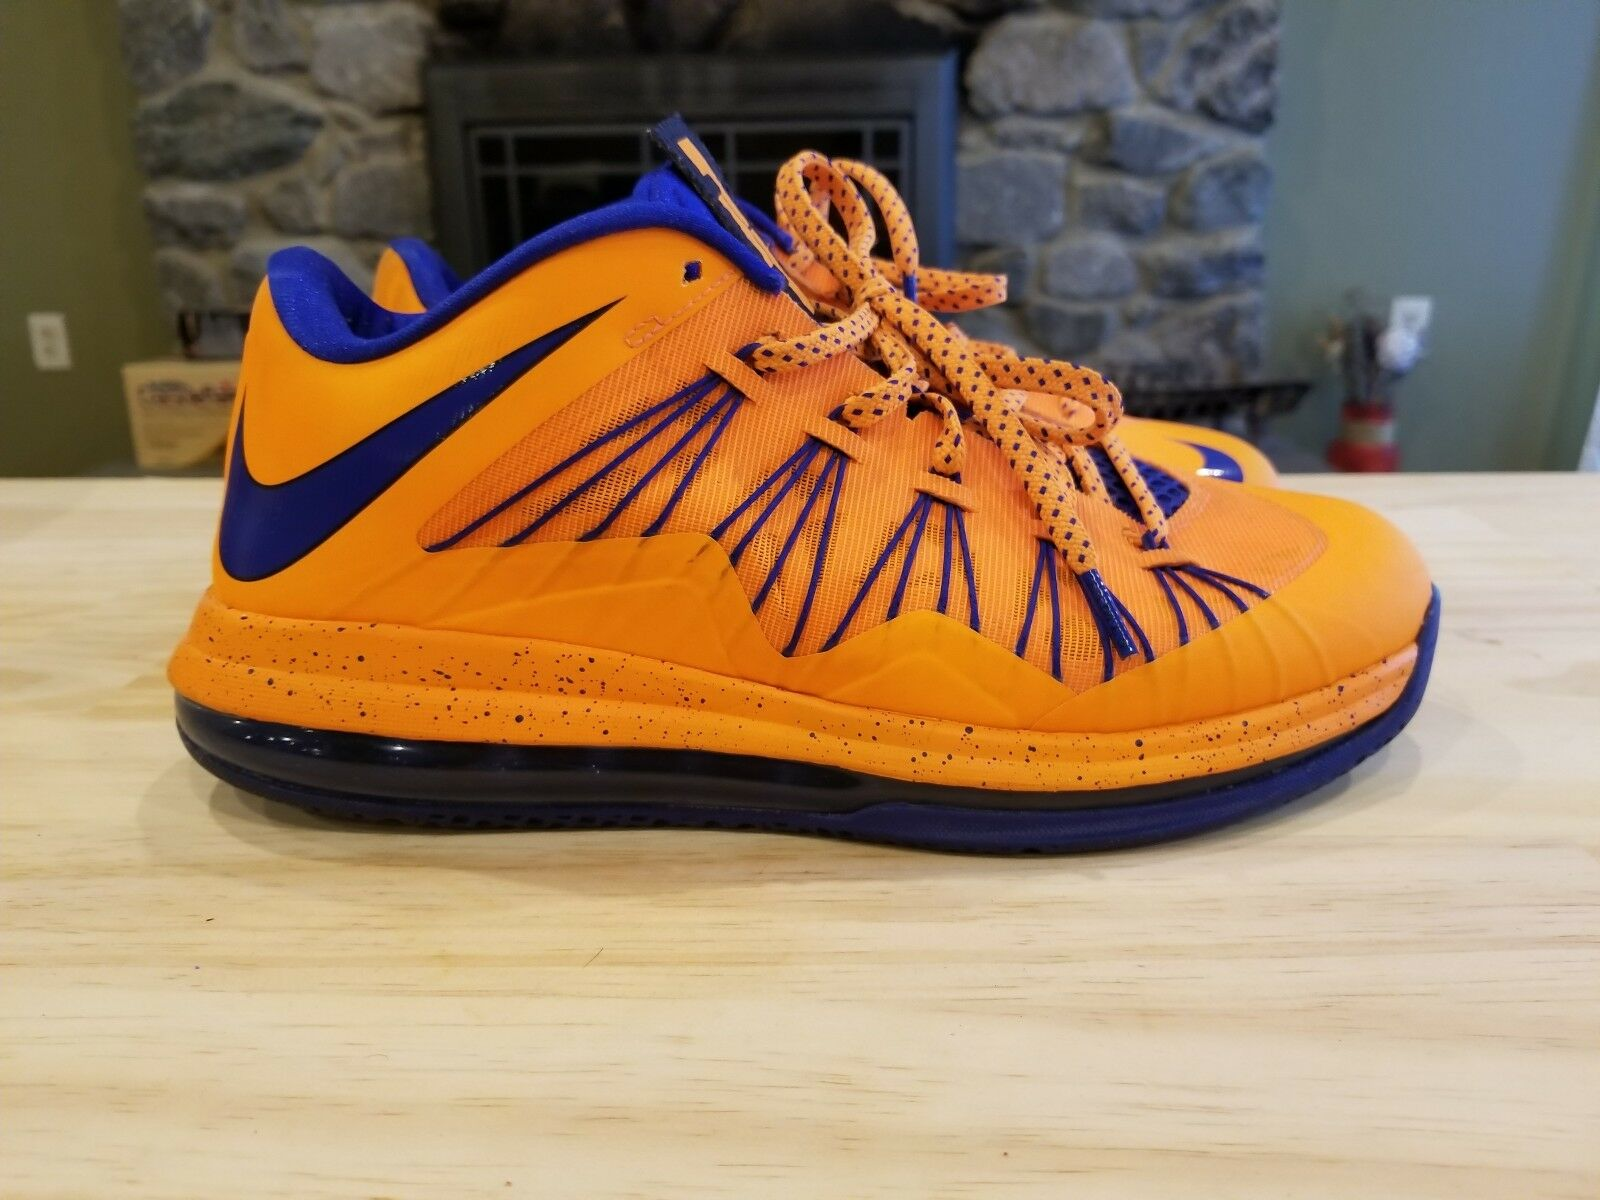 Nike Air Max Lebron X Low Bright Citrus Basketball Shoes 579765-800 Size 8.5